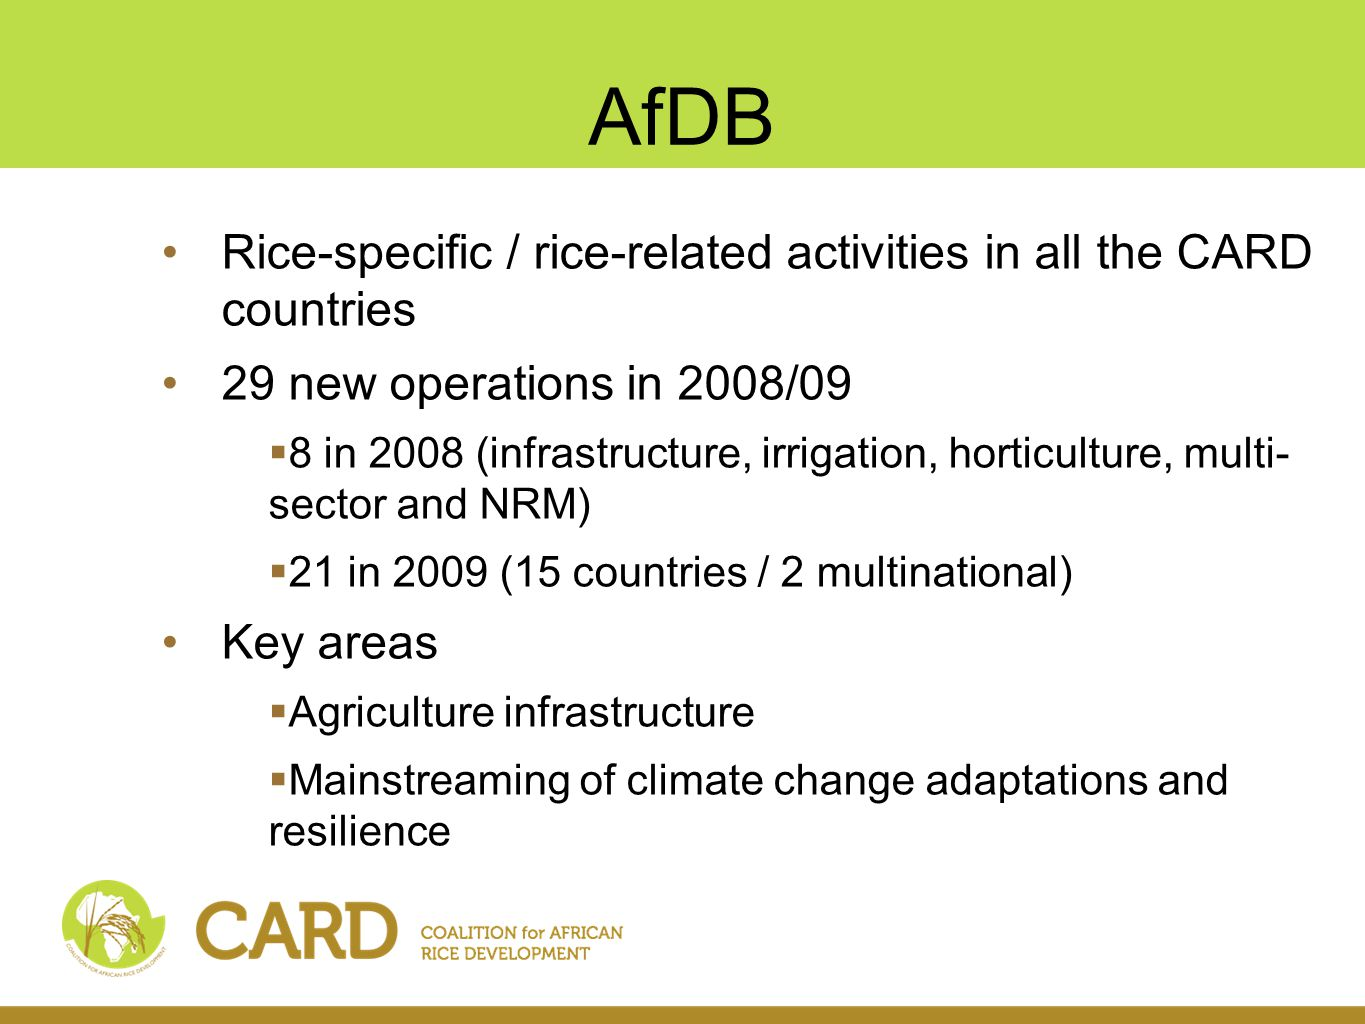 AfDB Rice-specific / rice-related activities in all the CARD countries 29 new operations in 2008/09  8 in 2008 (infrastructure, irrigation, horticulture, multi- sector and NRM)  21 in 2009 (15 countries / 2 multinational) Key areas  Agriculture infrastructure  Mainstreaming of climate change adaptations and resilience